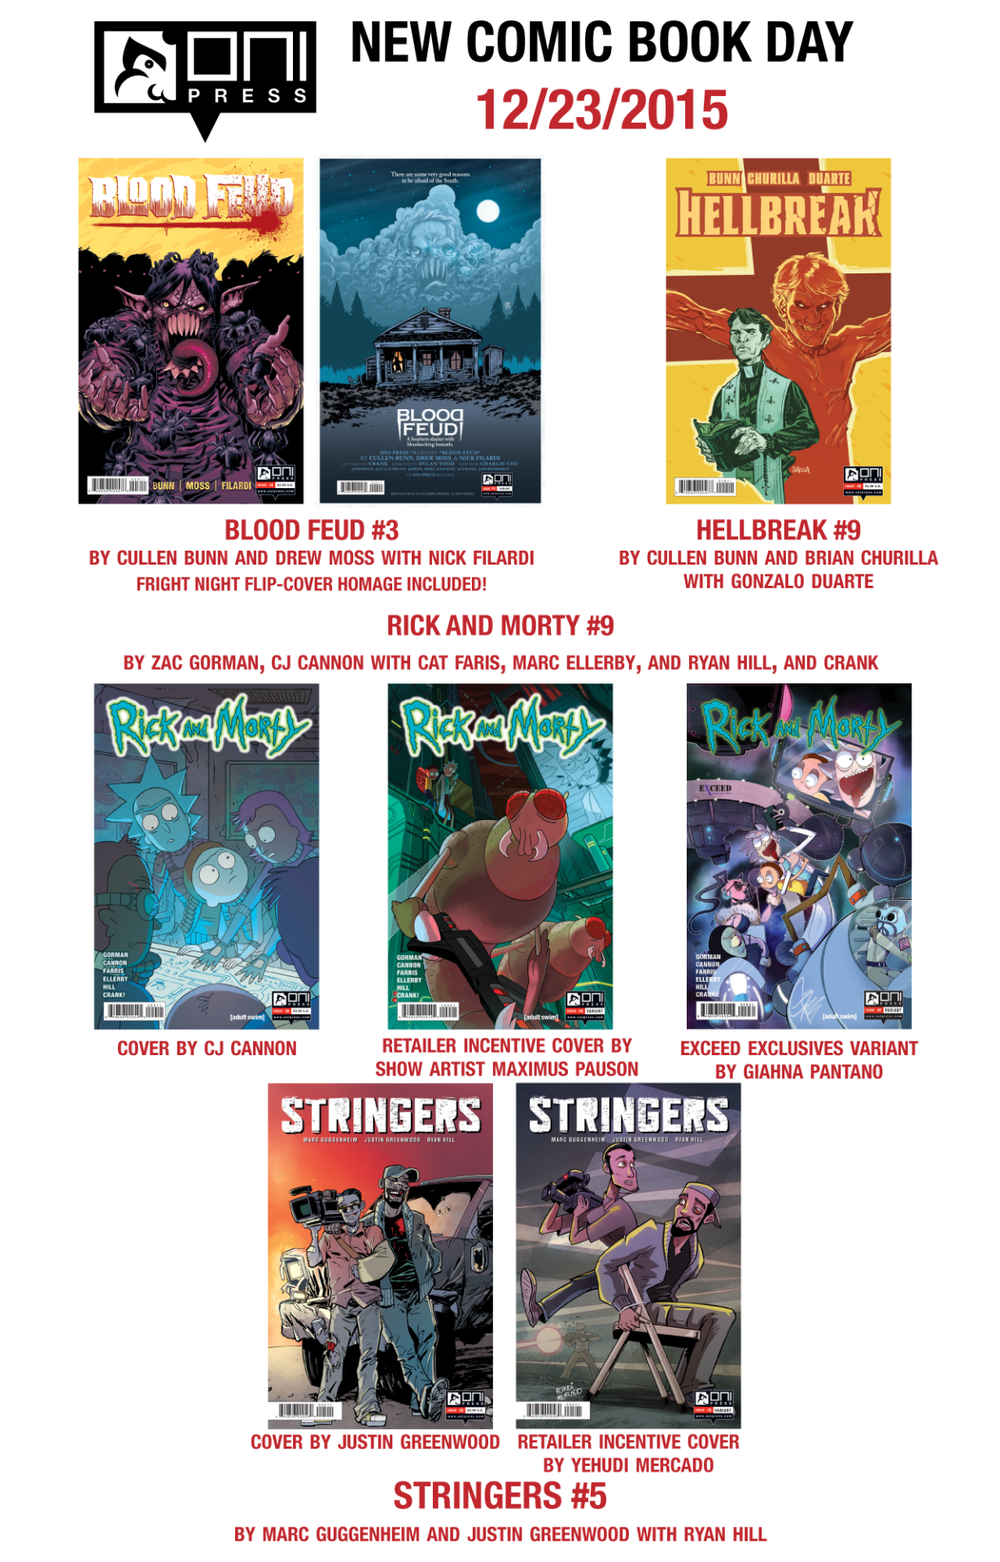 onipress: Happy New Comic Book Day! Out this week is: BLOOD FEUD #3 by Cullen Bunn and @drew-moss with @nickfilardi HELLBREAK #9 by Cullen Bunn and @brianchurilla with Gonzalo Duarte RICK AND MORTY #9 by @zacgormania and CJ Cannon with Cat Farris, @marcellerby, Ryan Hill, and CRANK! Main cover by CJ Cannon Retailer incentive cover by Rick and Morty show artist @maximusjpauson Exceed Exclusives variant cover by @icecry STRINGERS #5 (the finale!) by Marc Guggenheim and @justingreenwood with Ryan Hill Main cover by @justingreenwood  Retailer incentive cover by Yehudi Mercado What are you excited to pick up this week? Find your local comic shop at findacomicshop.com or comicshoplocator.com! Woo hoo! Just in time for the holidays!